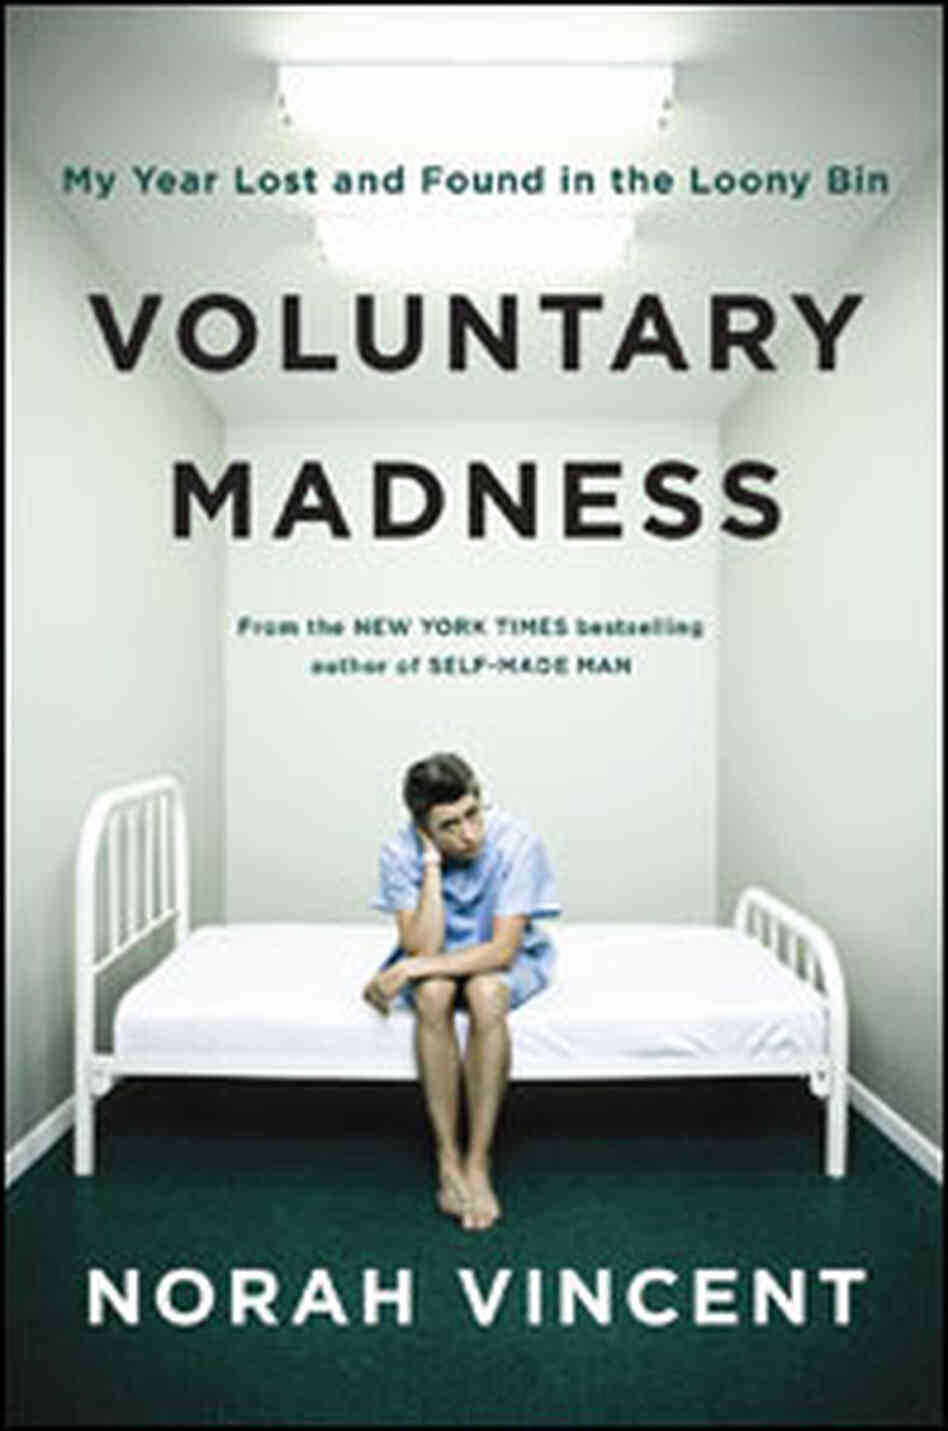 Book Cover of 'Voluntary Madness'